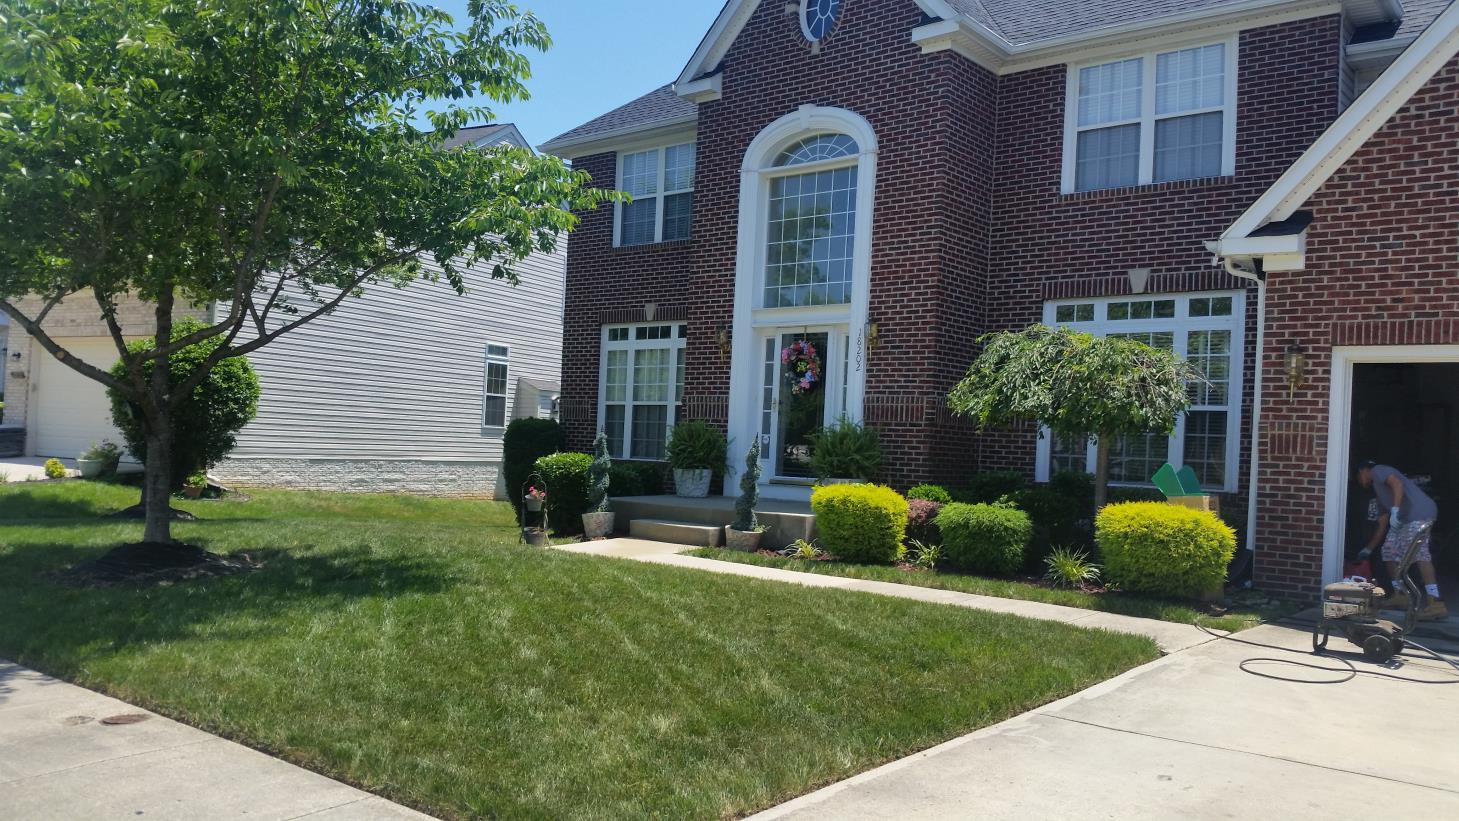 Kd lawn service llc white plains maryland for Local lawn care services